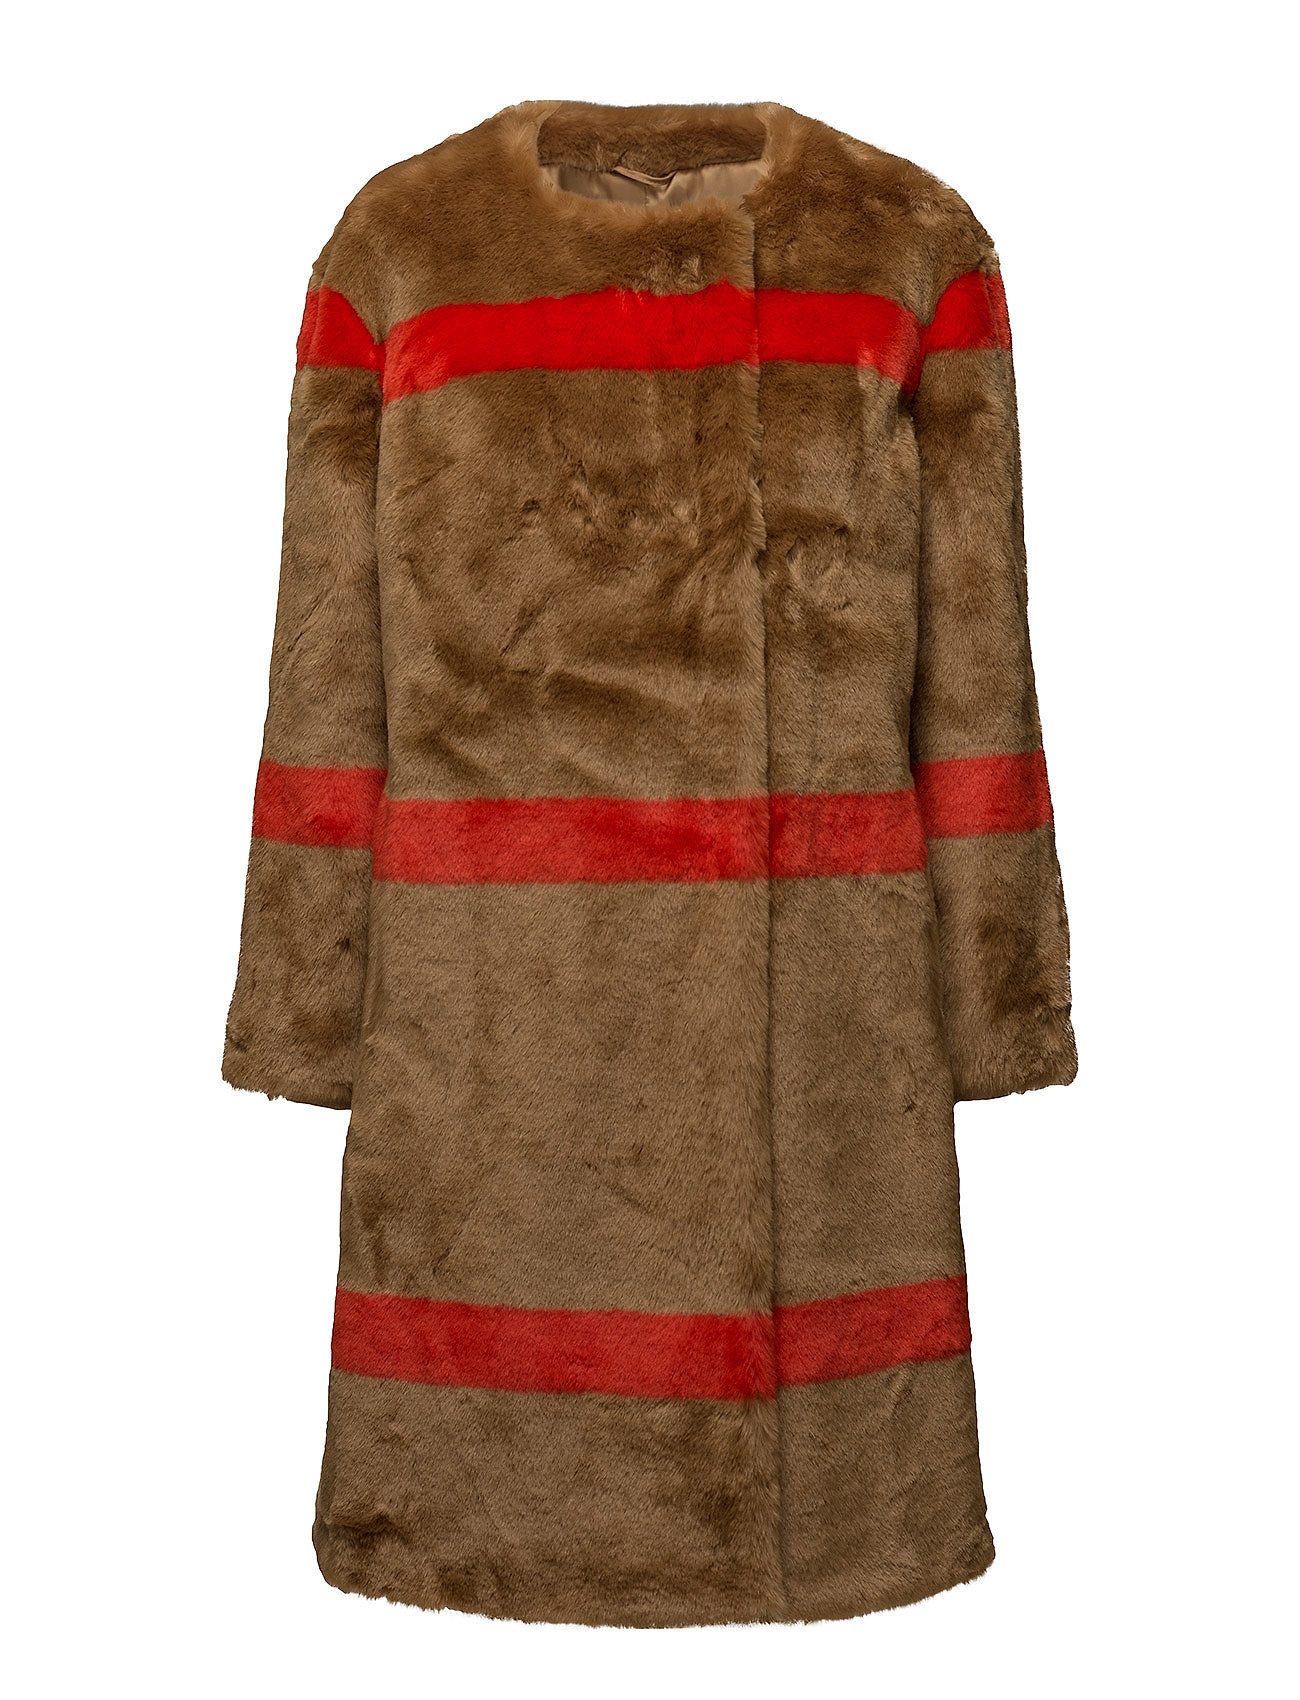 Stand Idette Simple Coat